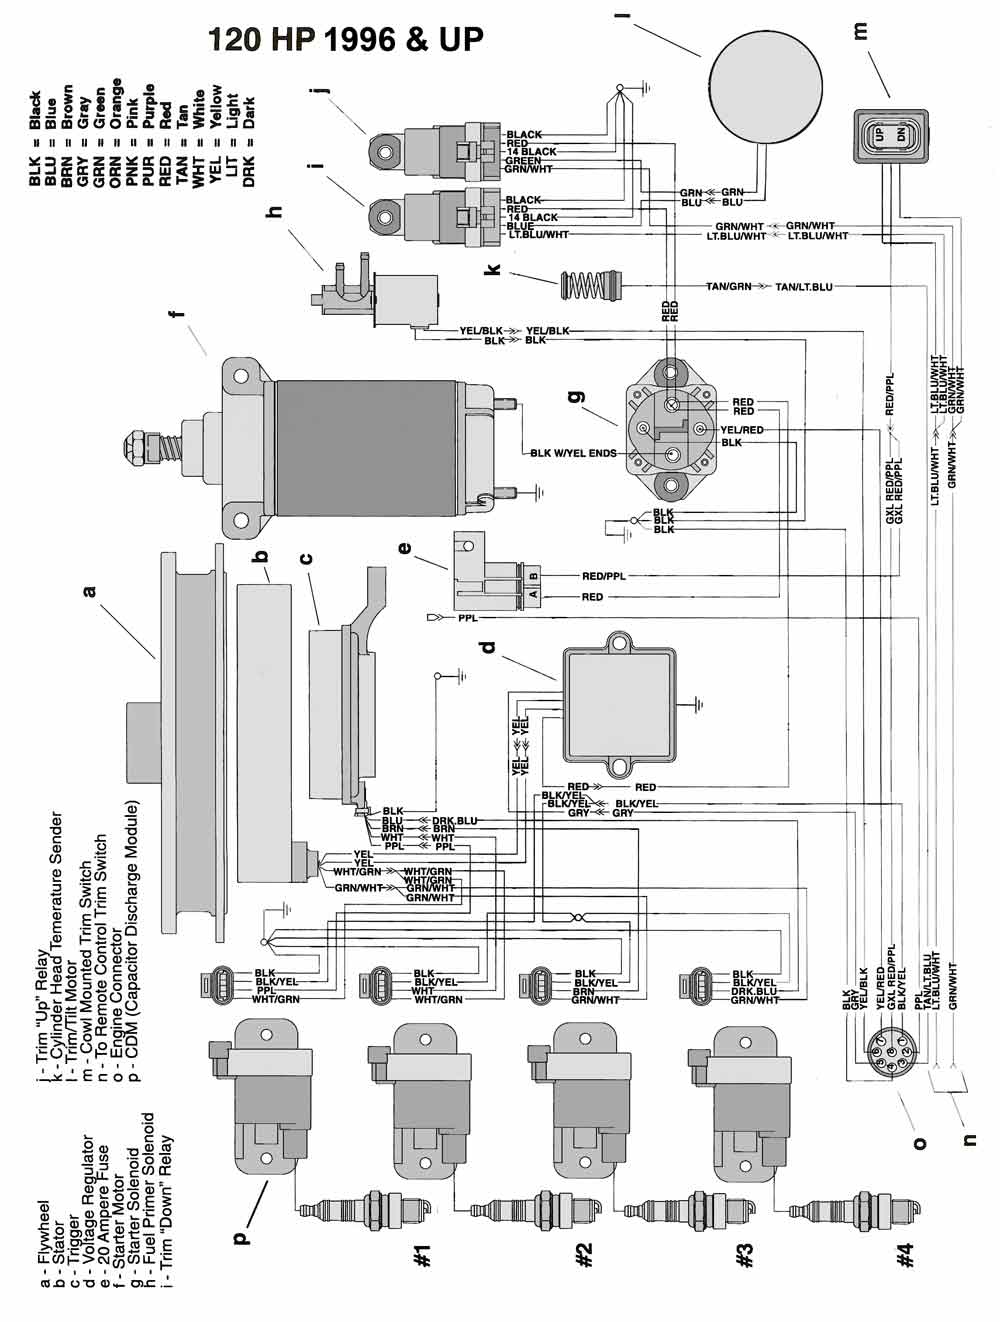 Mercruiser 120 Wiring Diagram Another Blog About 2002 Yamaha Roadstar Warrior Harness Chrysler Outboard Diagrams Mastertech Marine Rh Maxrules Com